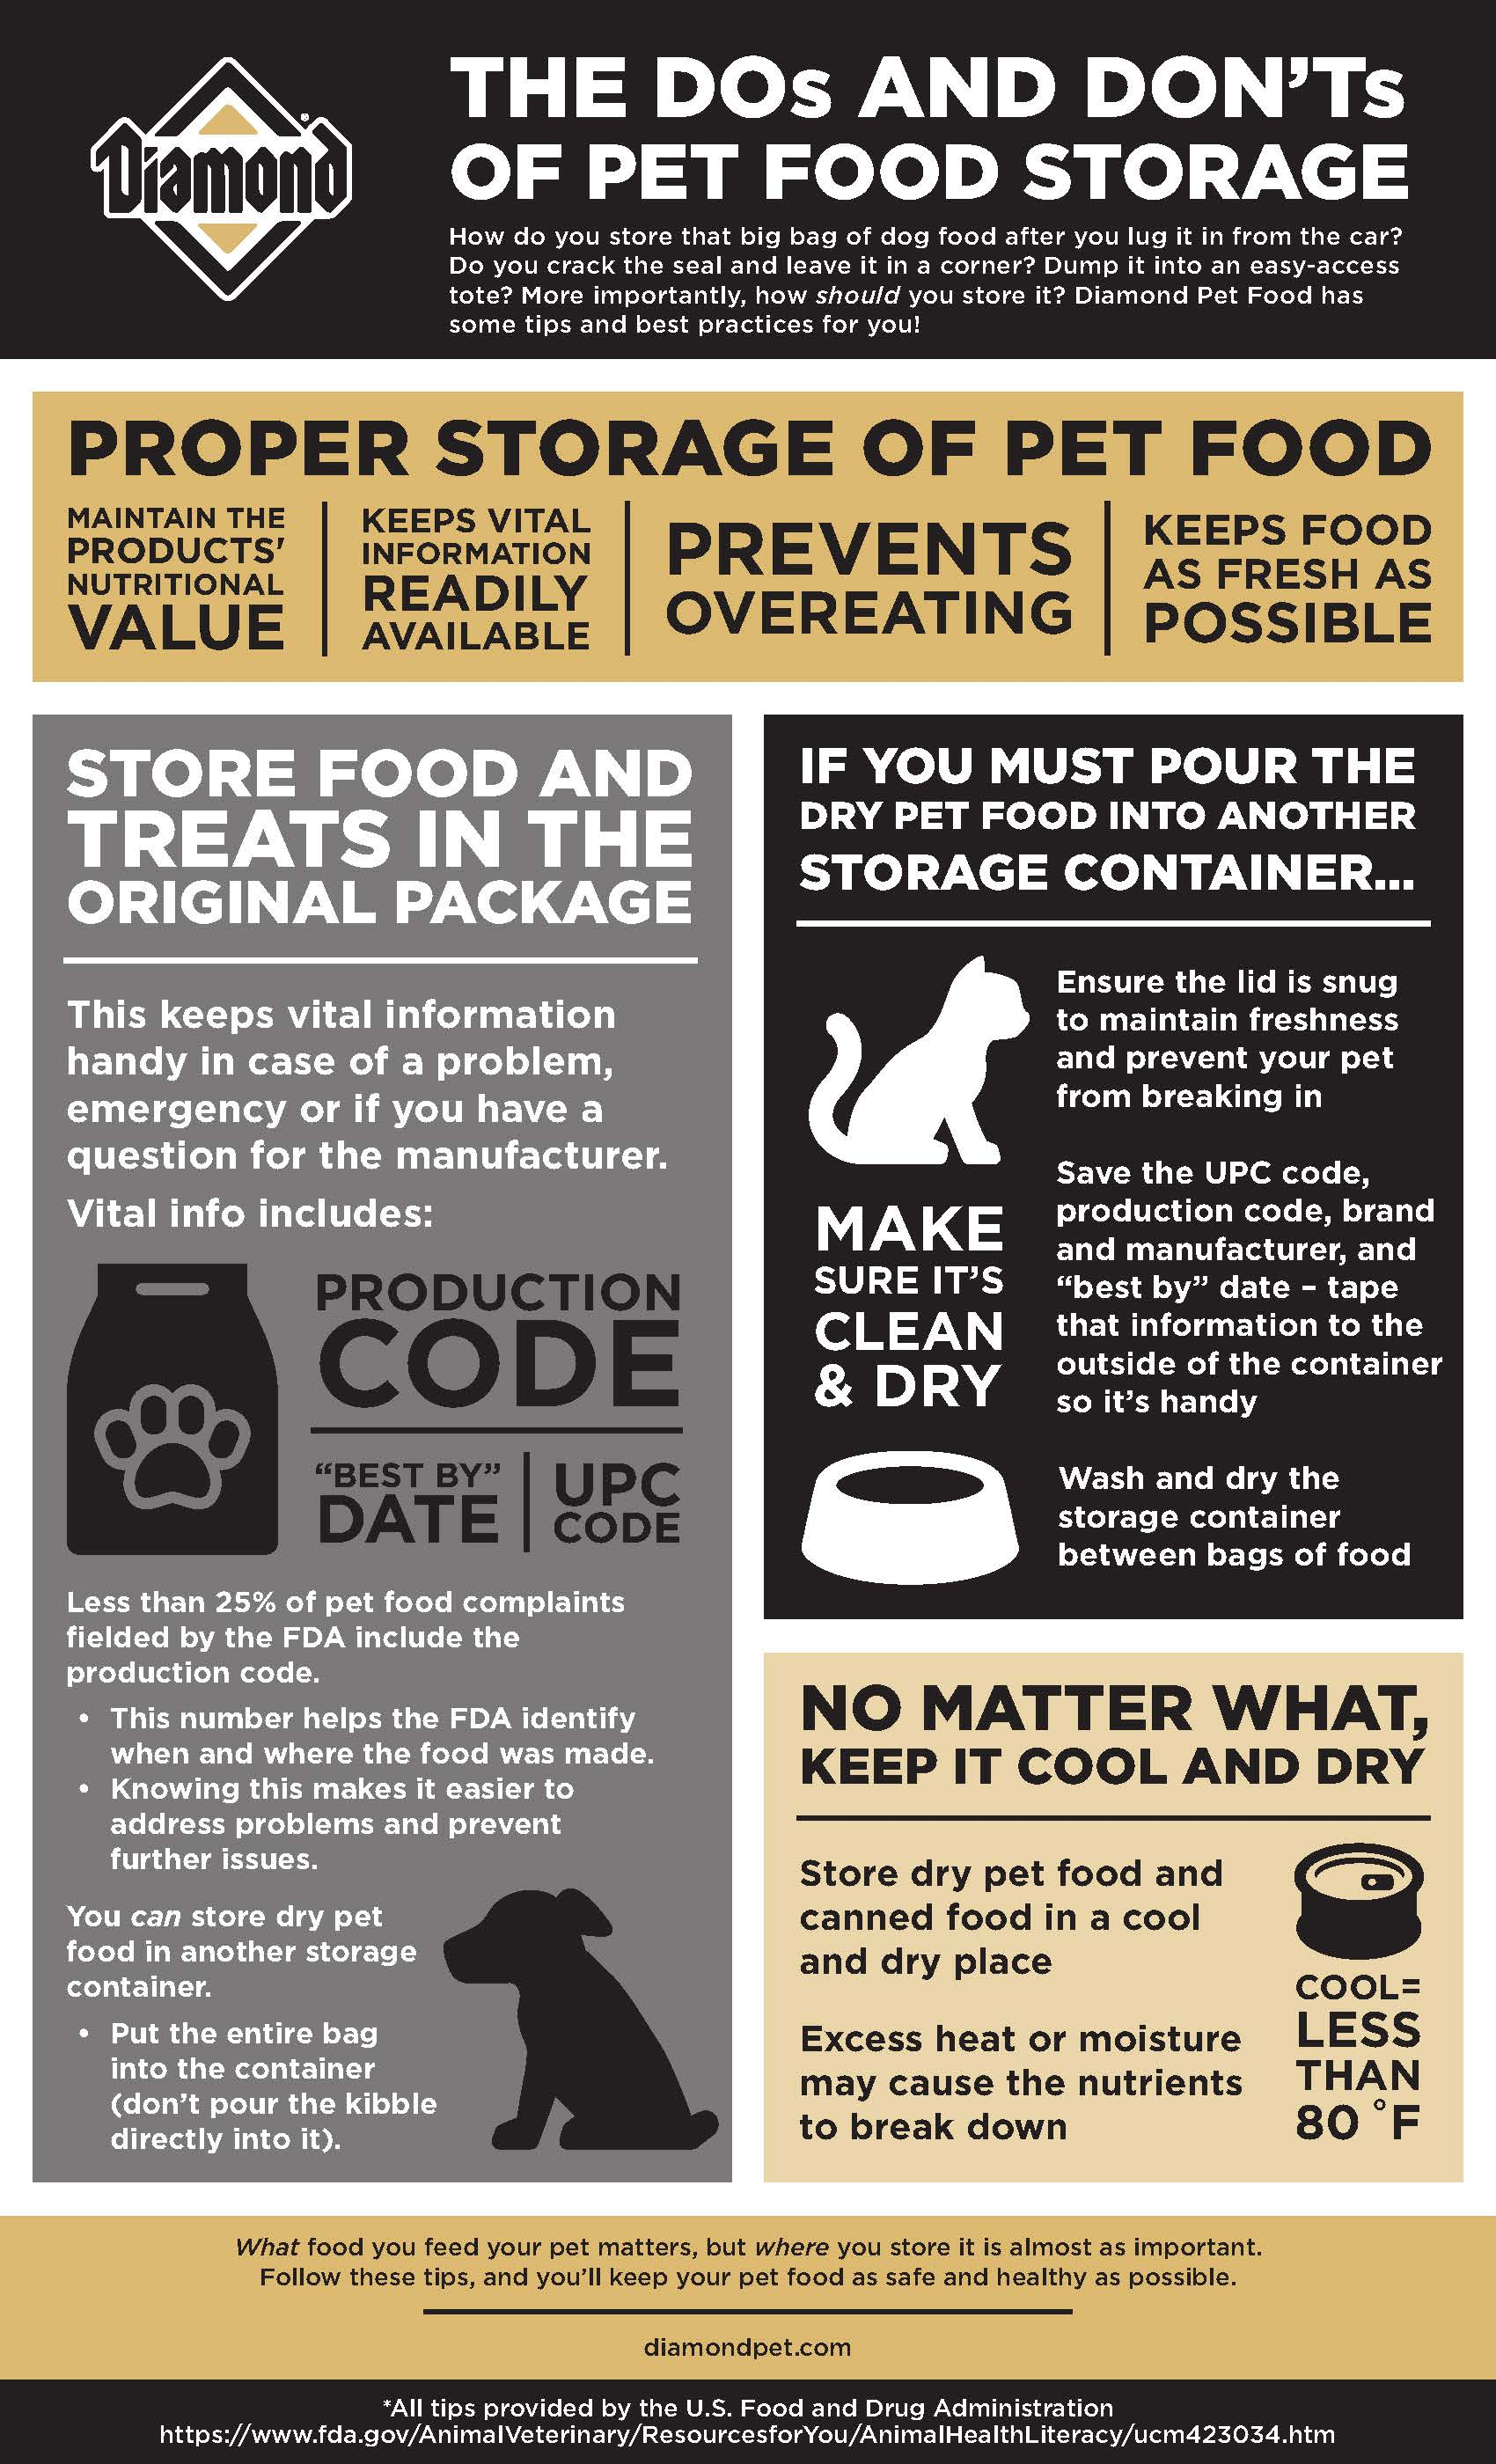 Proper Pet Food Storage infographic